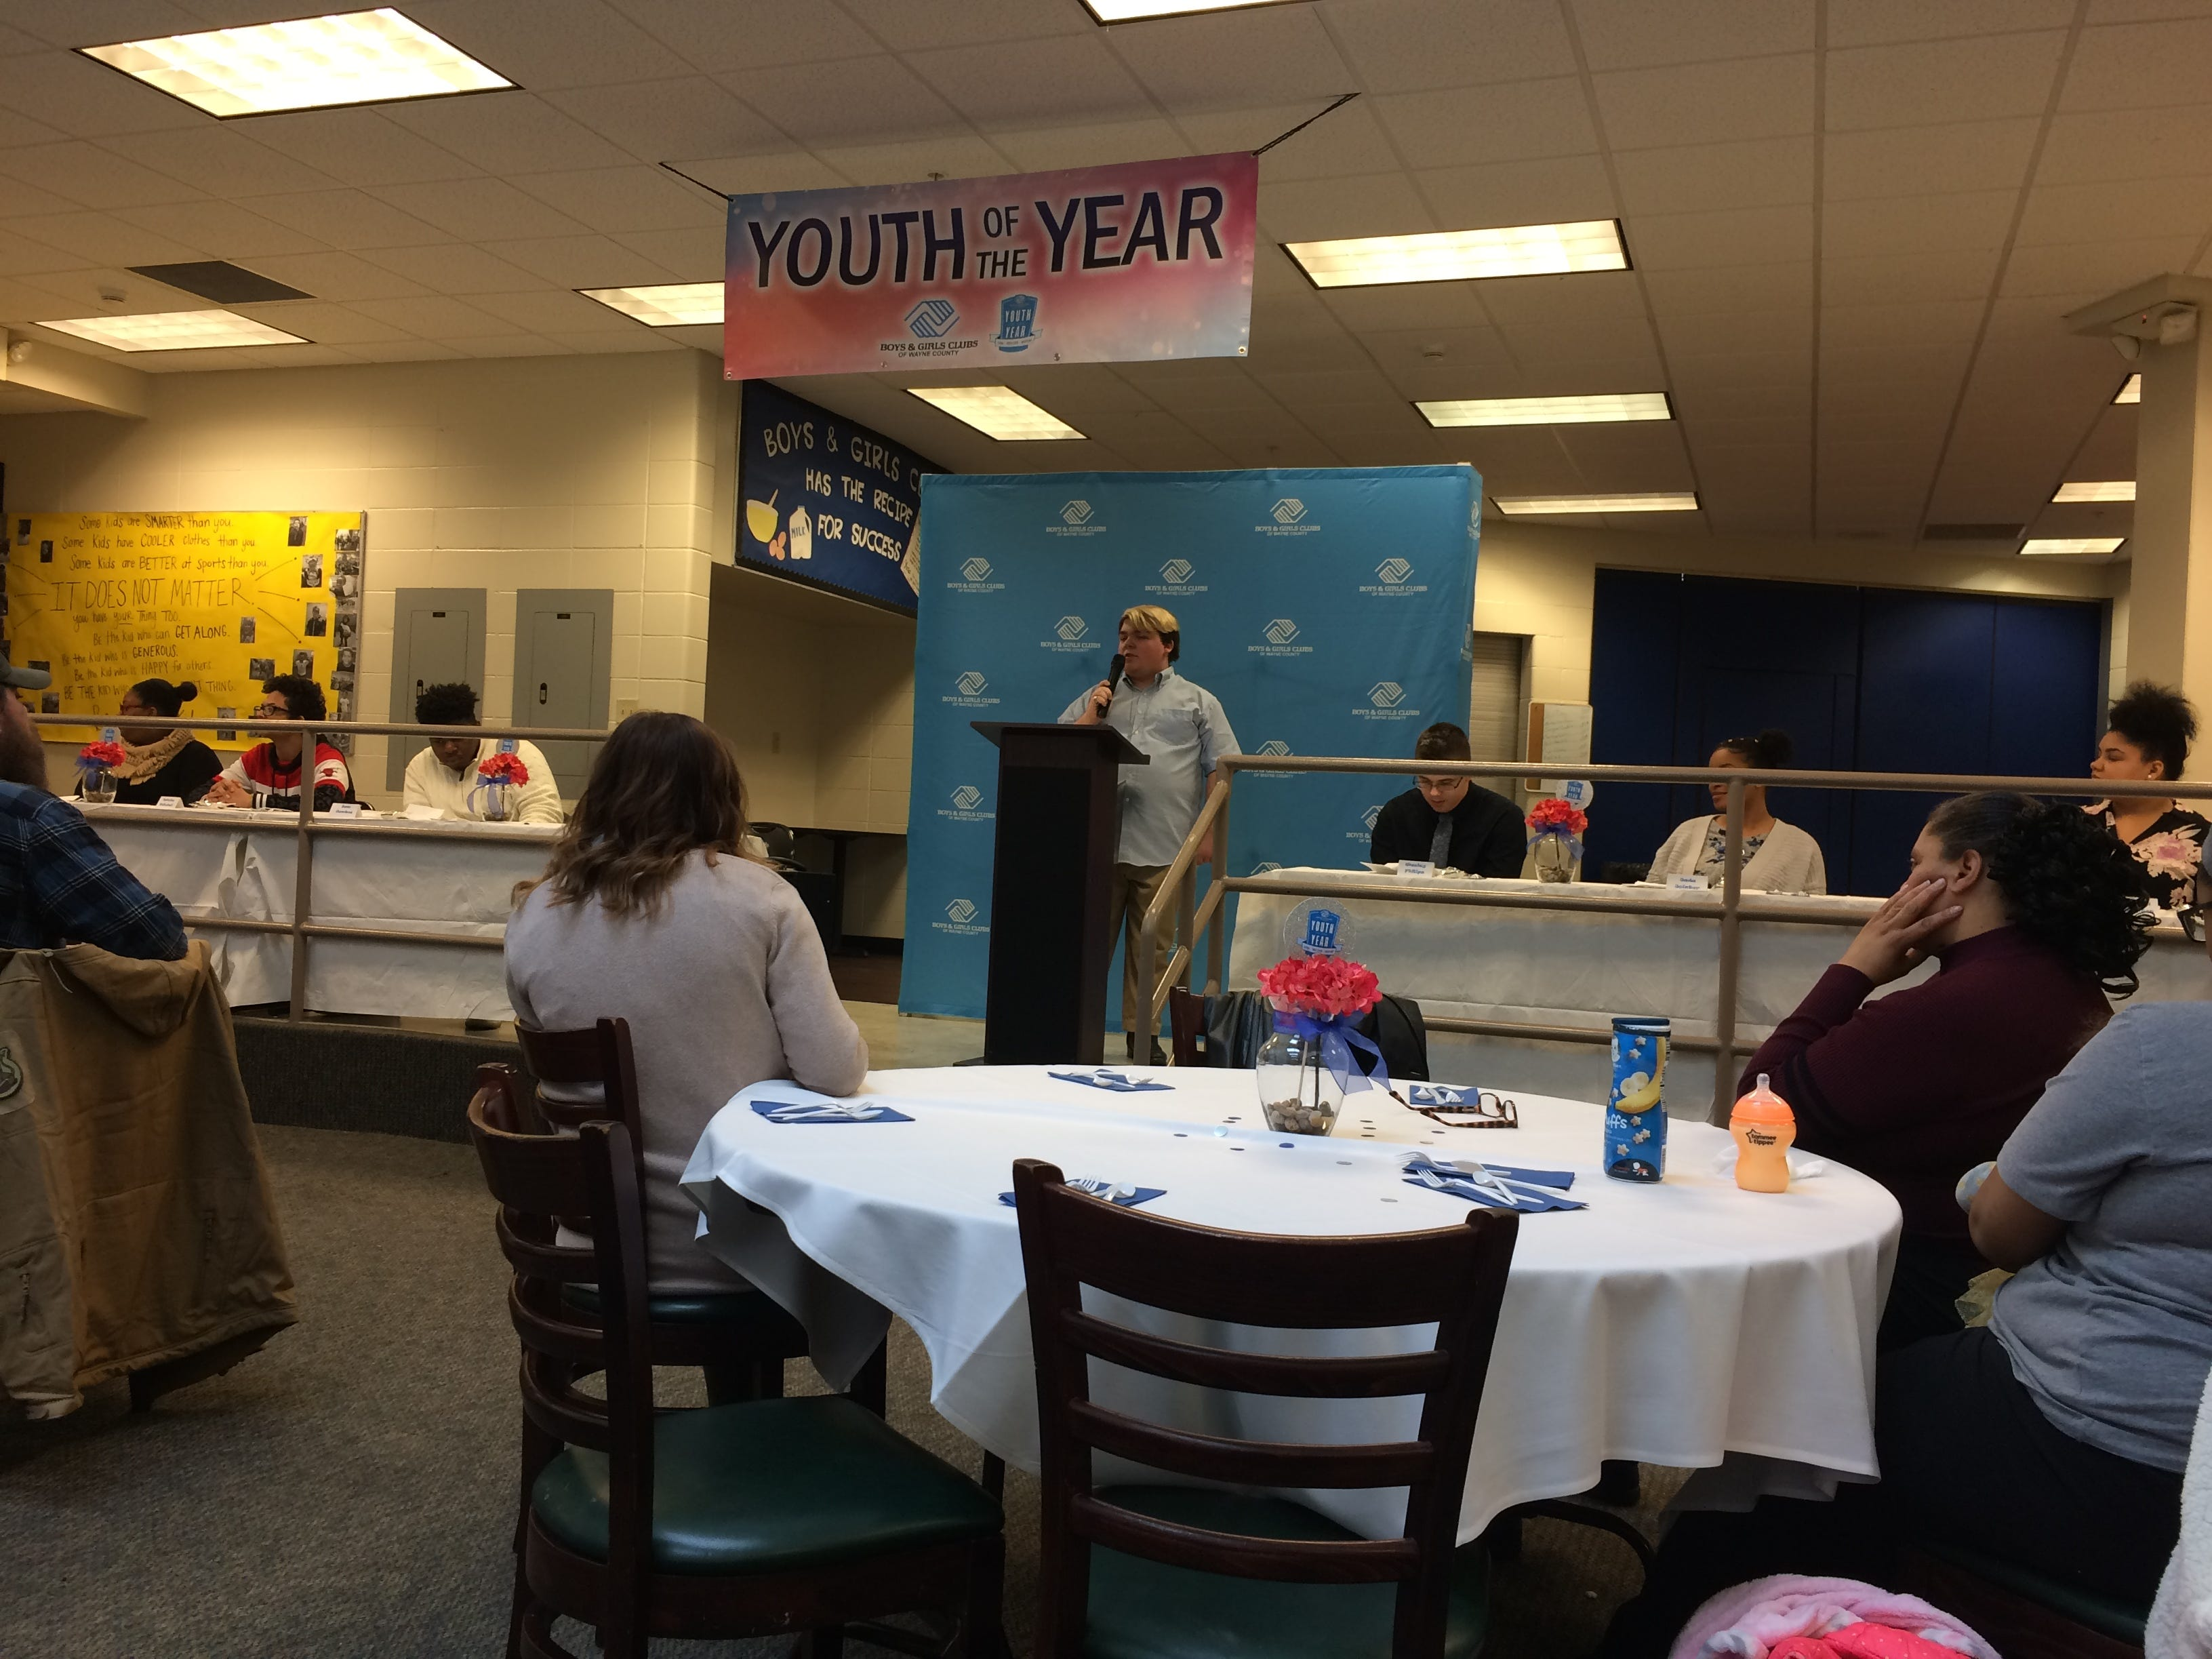 Mikey Martin addresses those in attendance for the Youth of the Year luncheon at the Jeffers Unit.